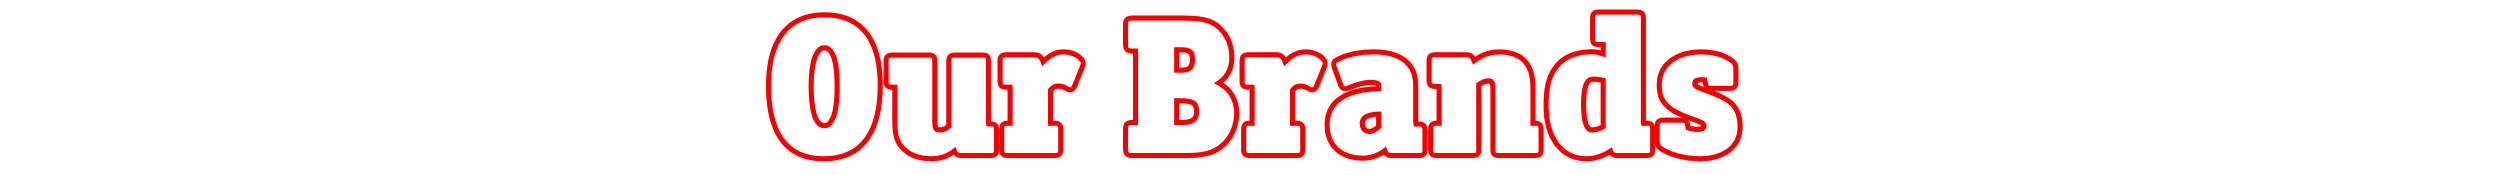 Our Brands Banner Font.png